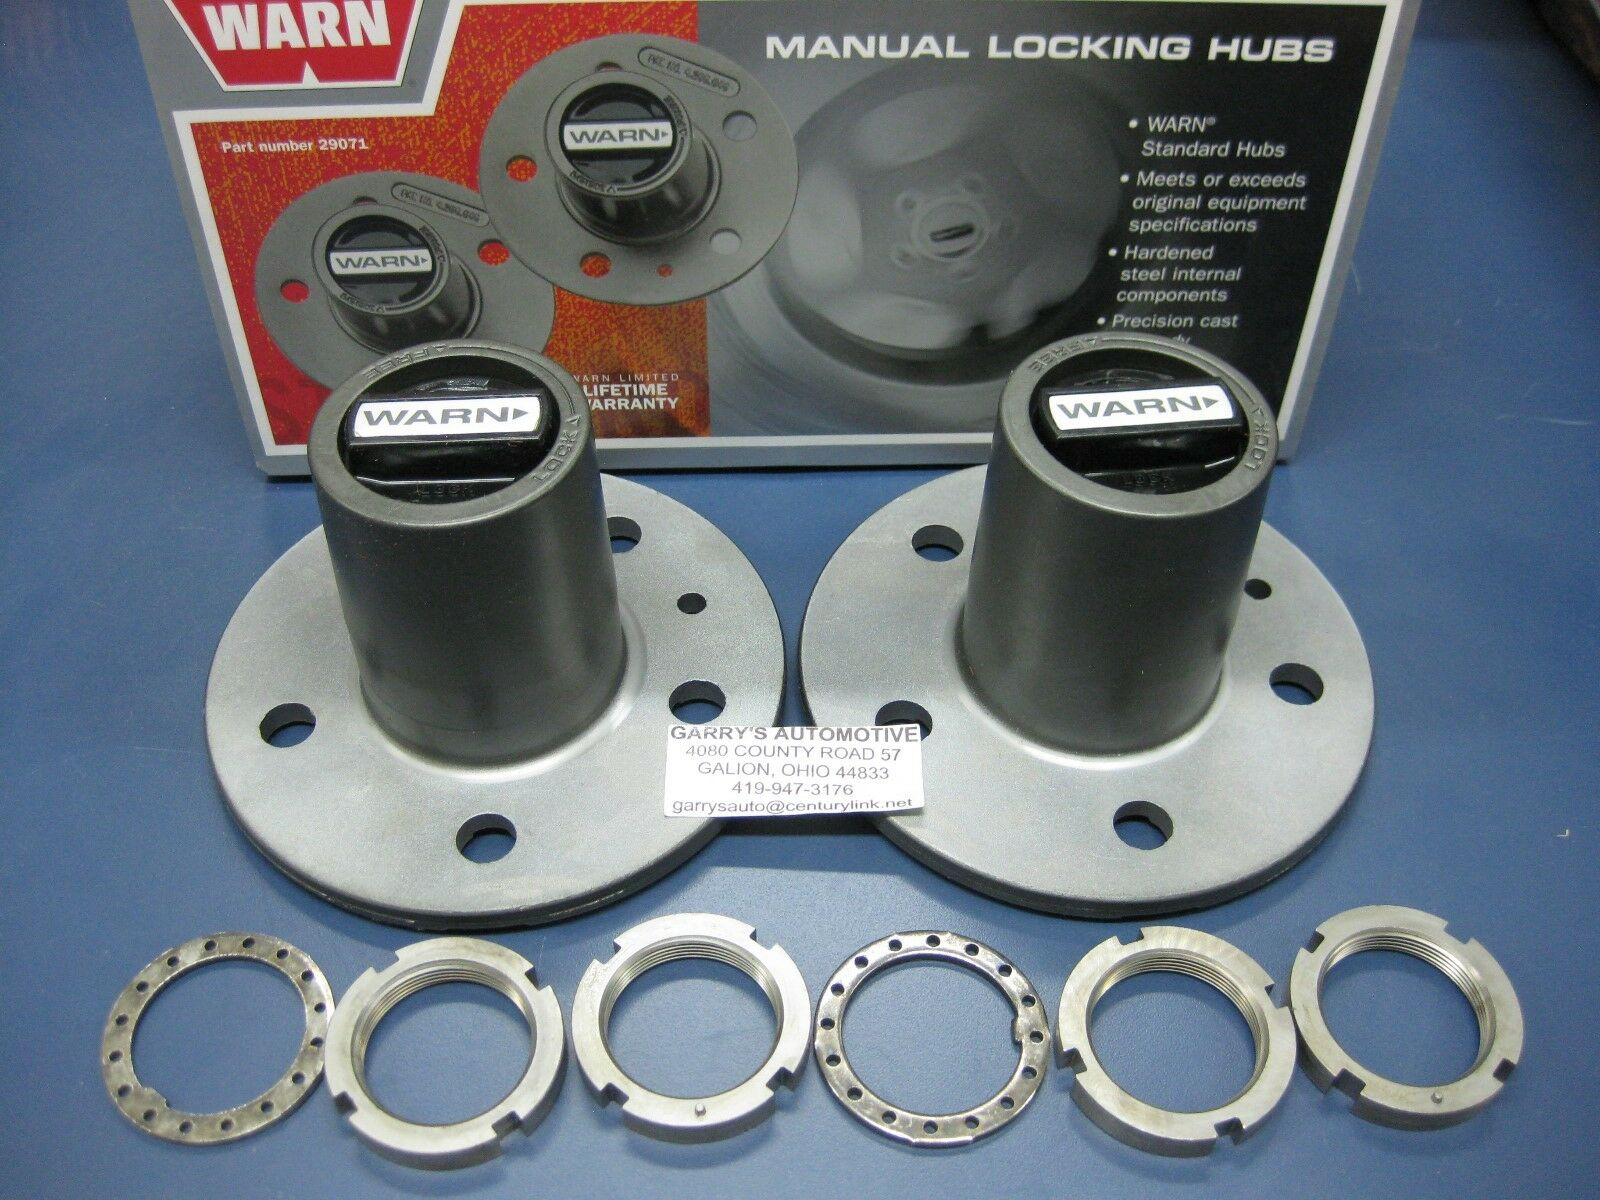 WARN 29071 4WD Manual Locking Hubs Conversion Ranger Explorer Mazda Truck  Navajo 1 of 2 See More